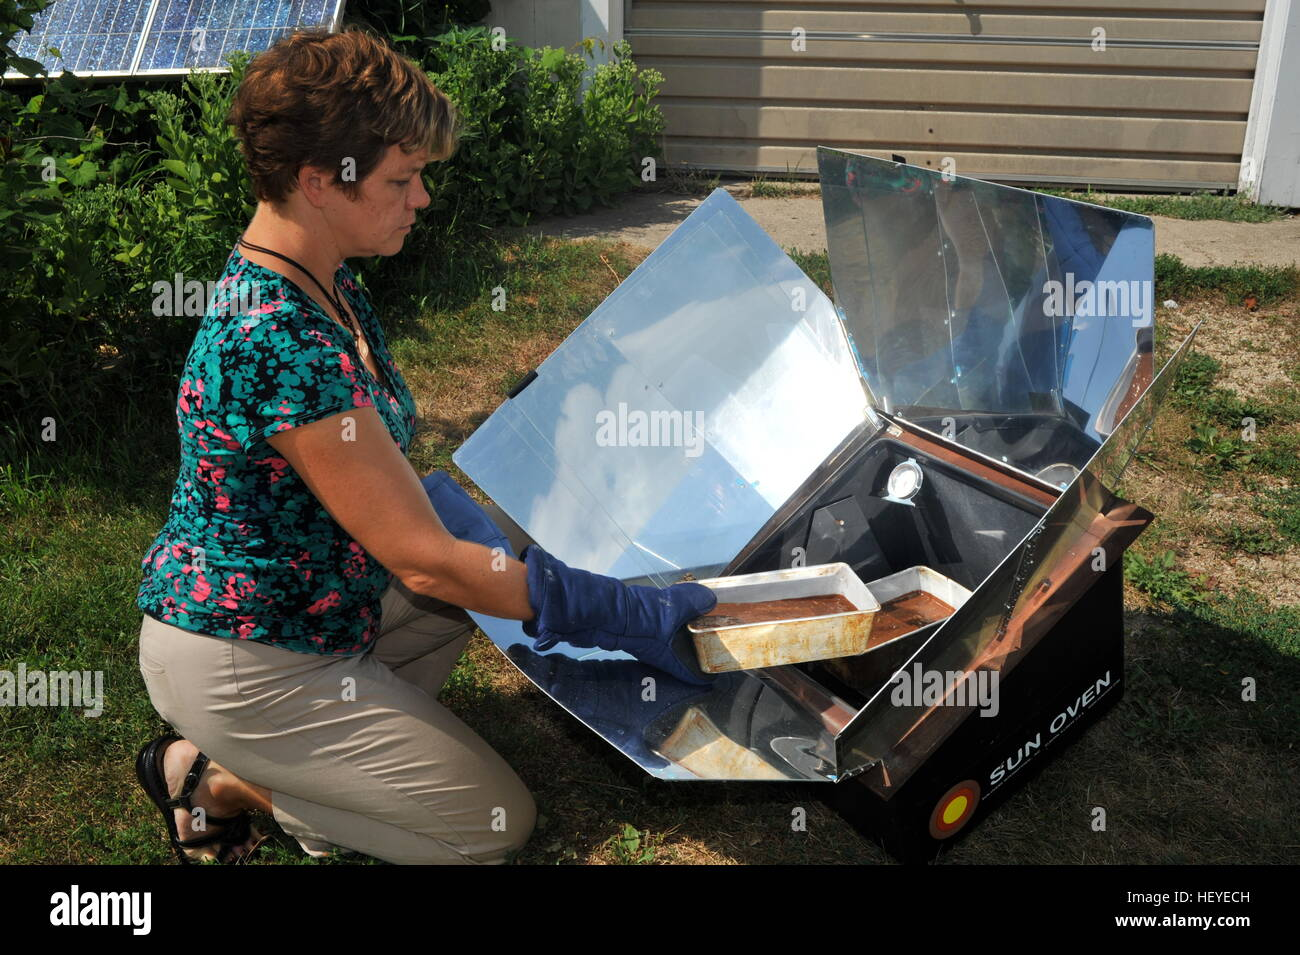 Woman cooking or baking fresh zucchini bread with a Sun Oven outside, using the sunlight for the baking. Stock Photo